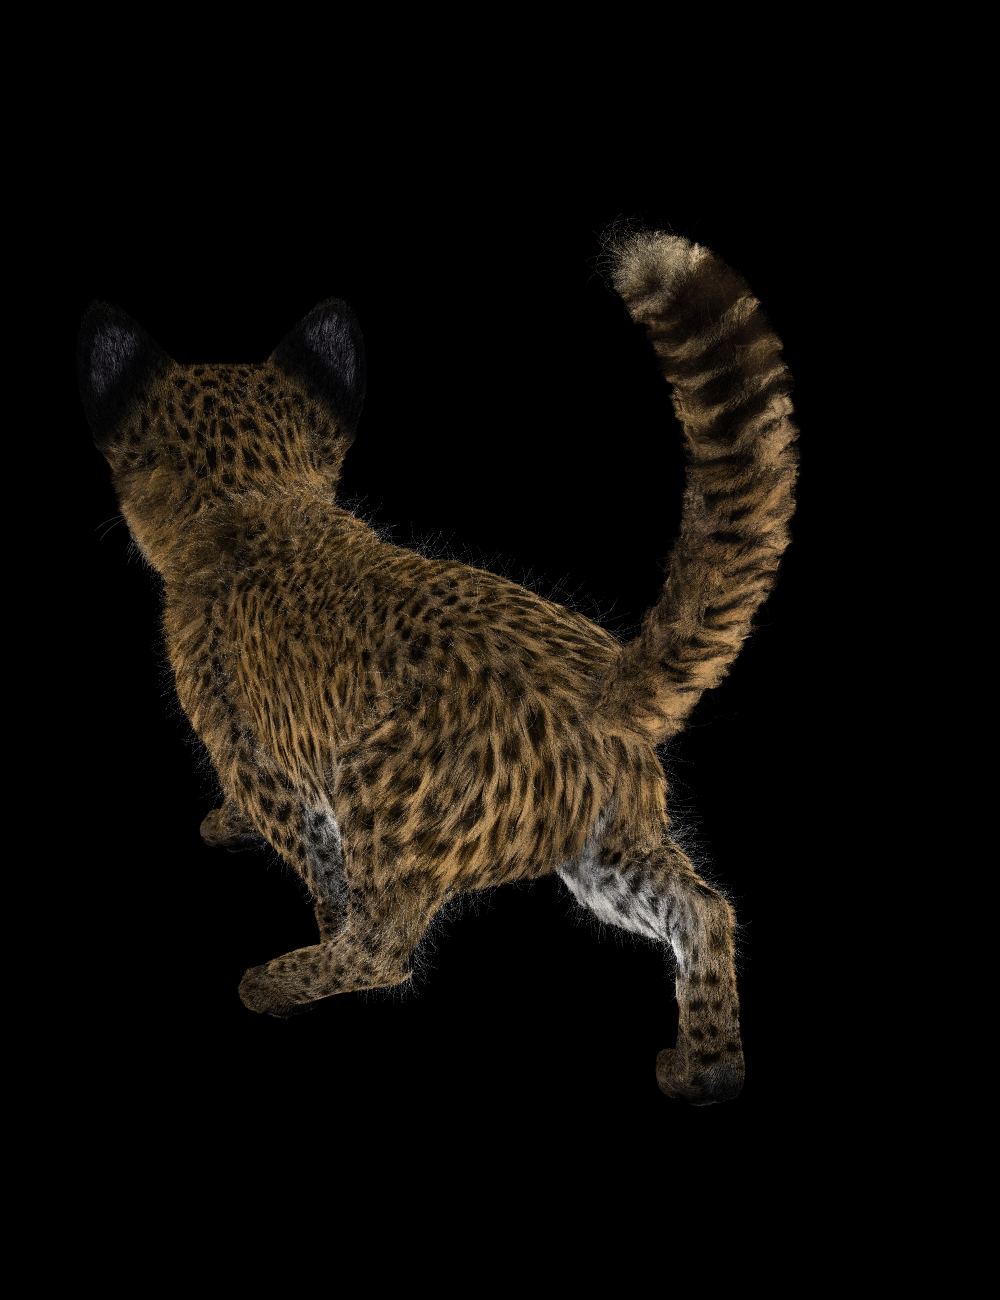 Leopard Kitty with Big ears back view 3Delight.jpg